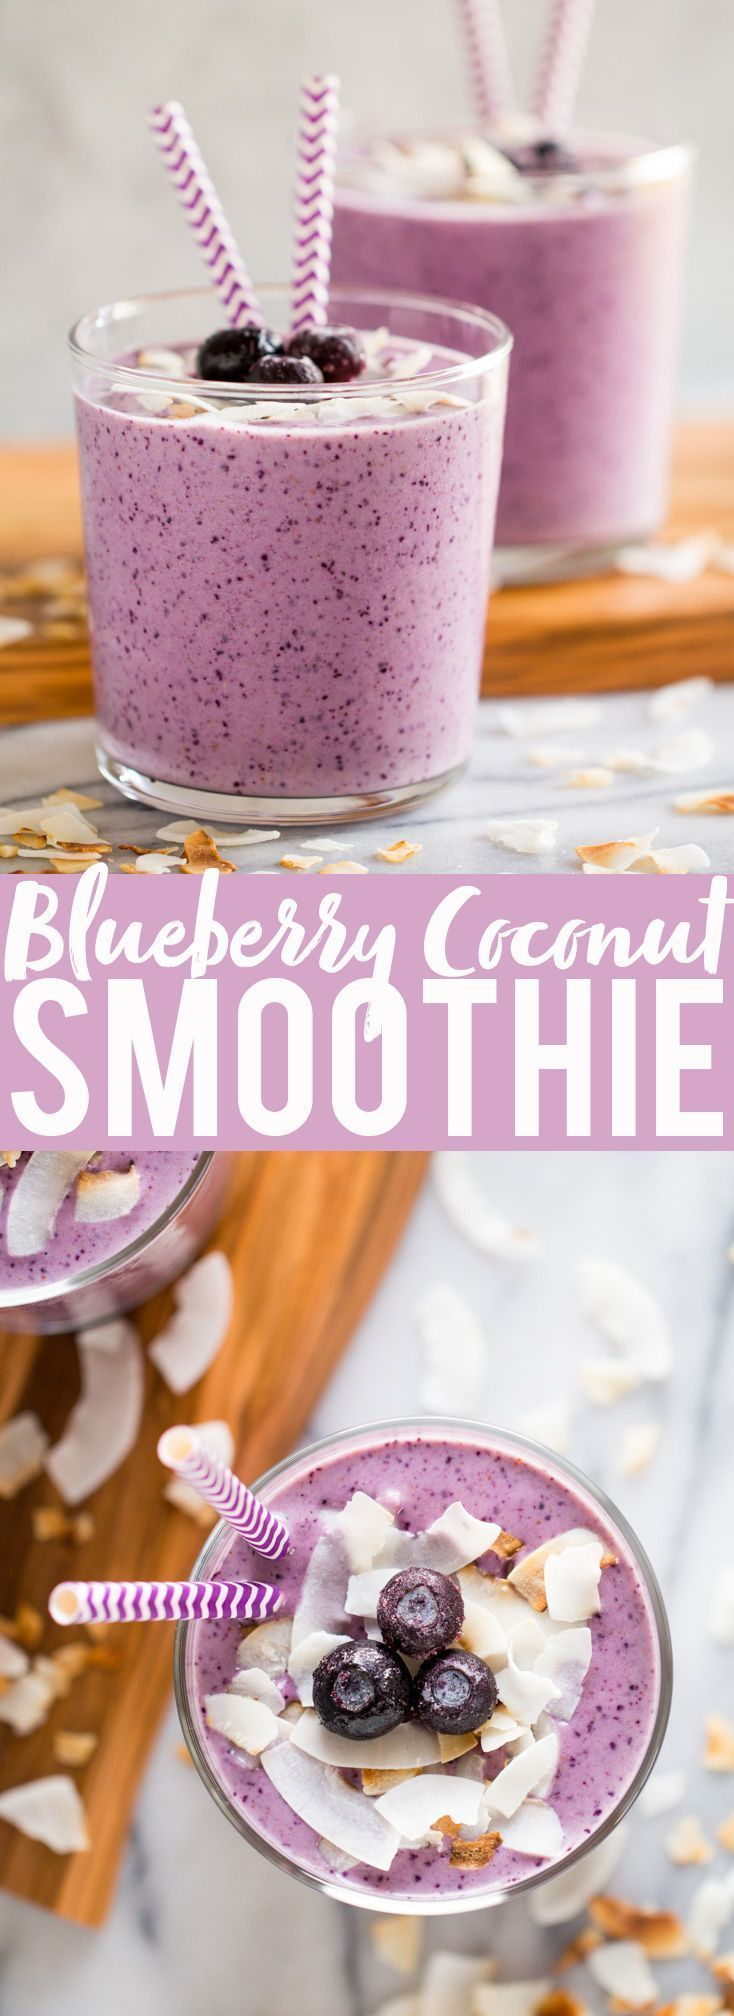 Blueberry Banana Coconut Smoothie   Smoothie recipes   Blueberry Smoothie   Coconut milk smoothie   Almond butter in smoothies   Breakfast Smoothie  See more http://recipesheaven.com/paleo>>> >>> >>> >>> We love this at Little Mashies headquarterslittlemashies.com